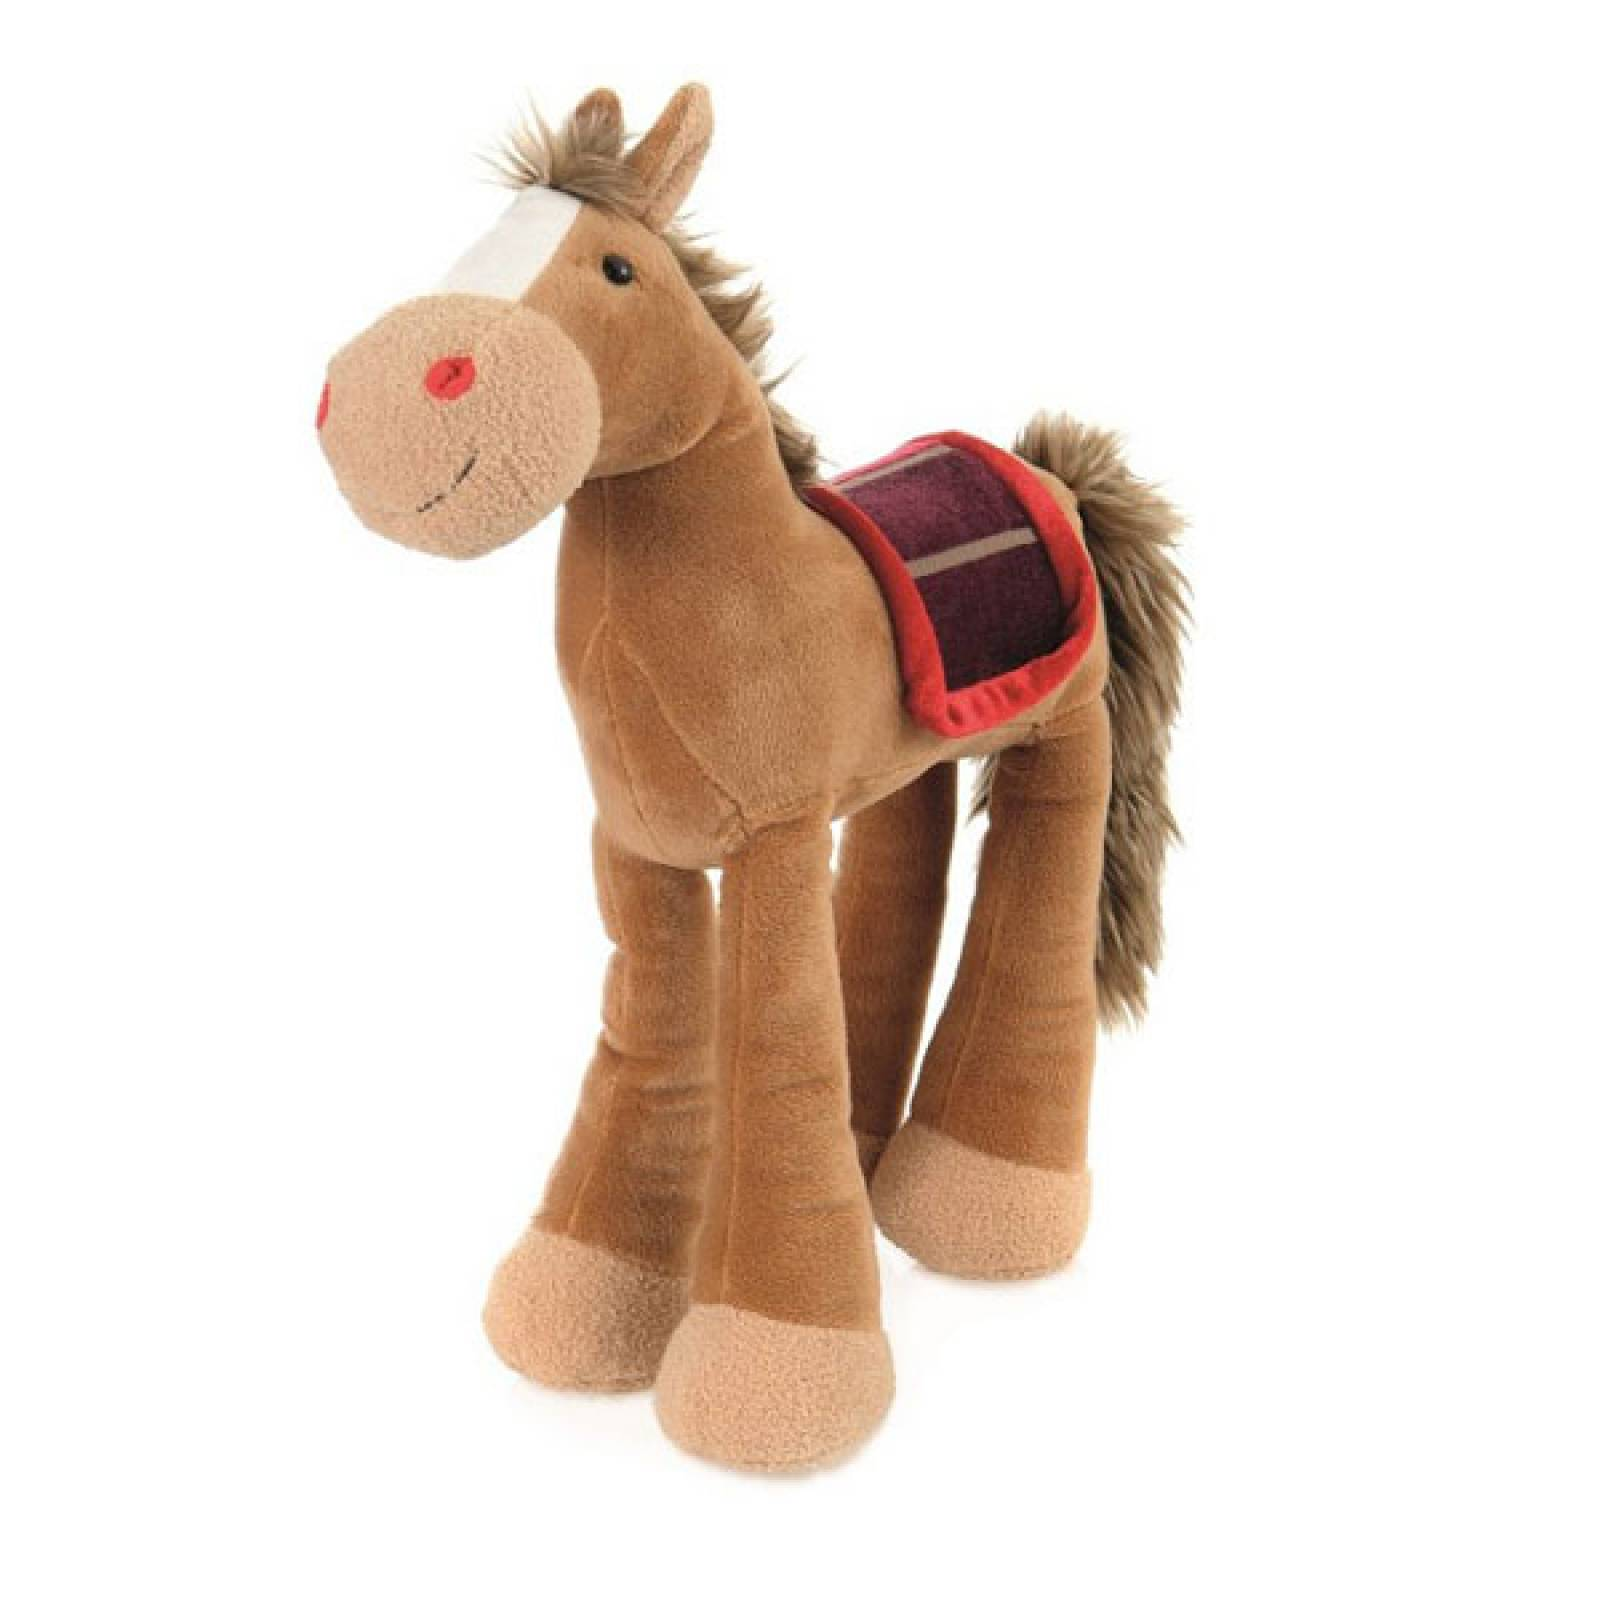 Small Ferdinand Horse Soft Toy 0+